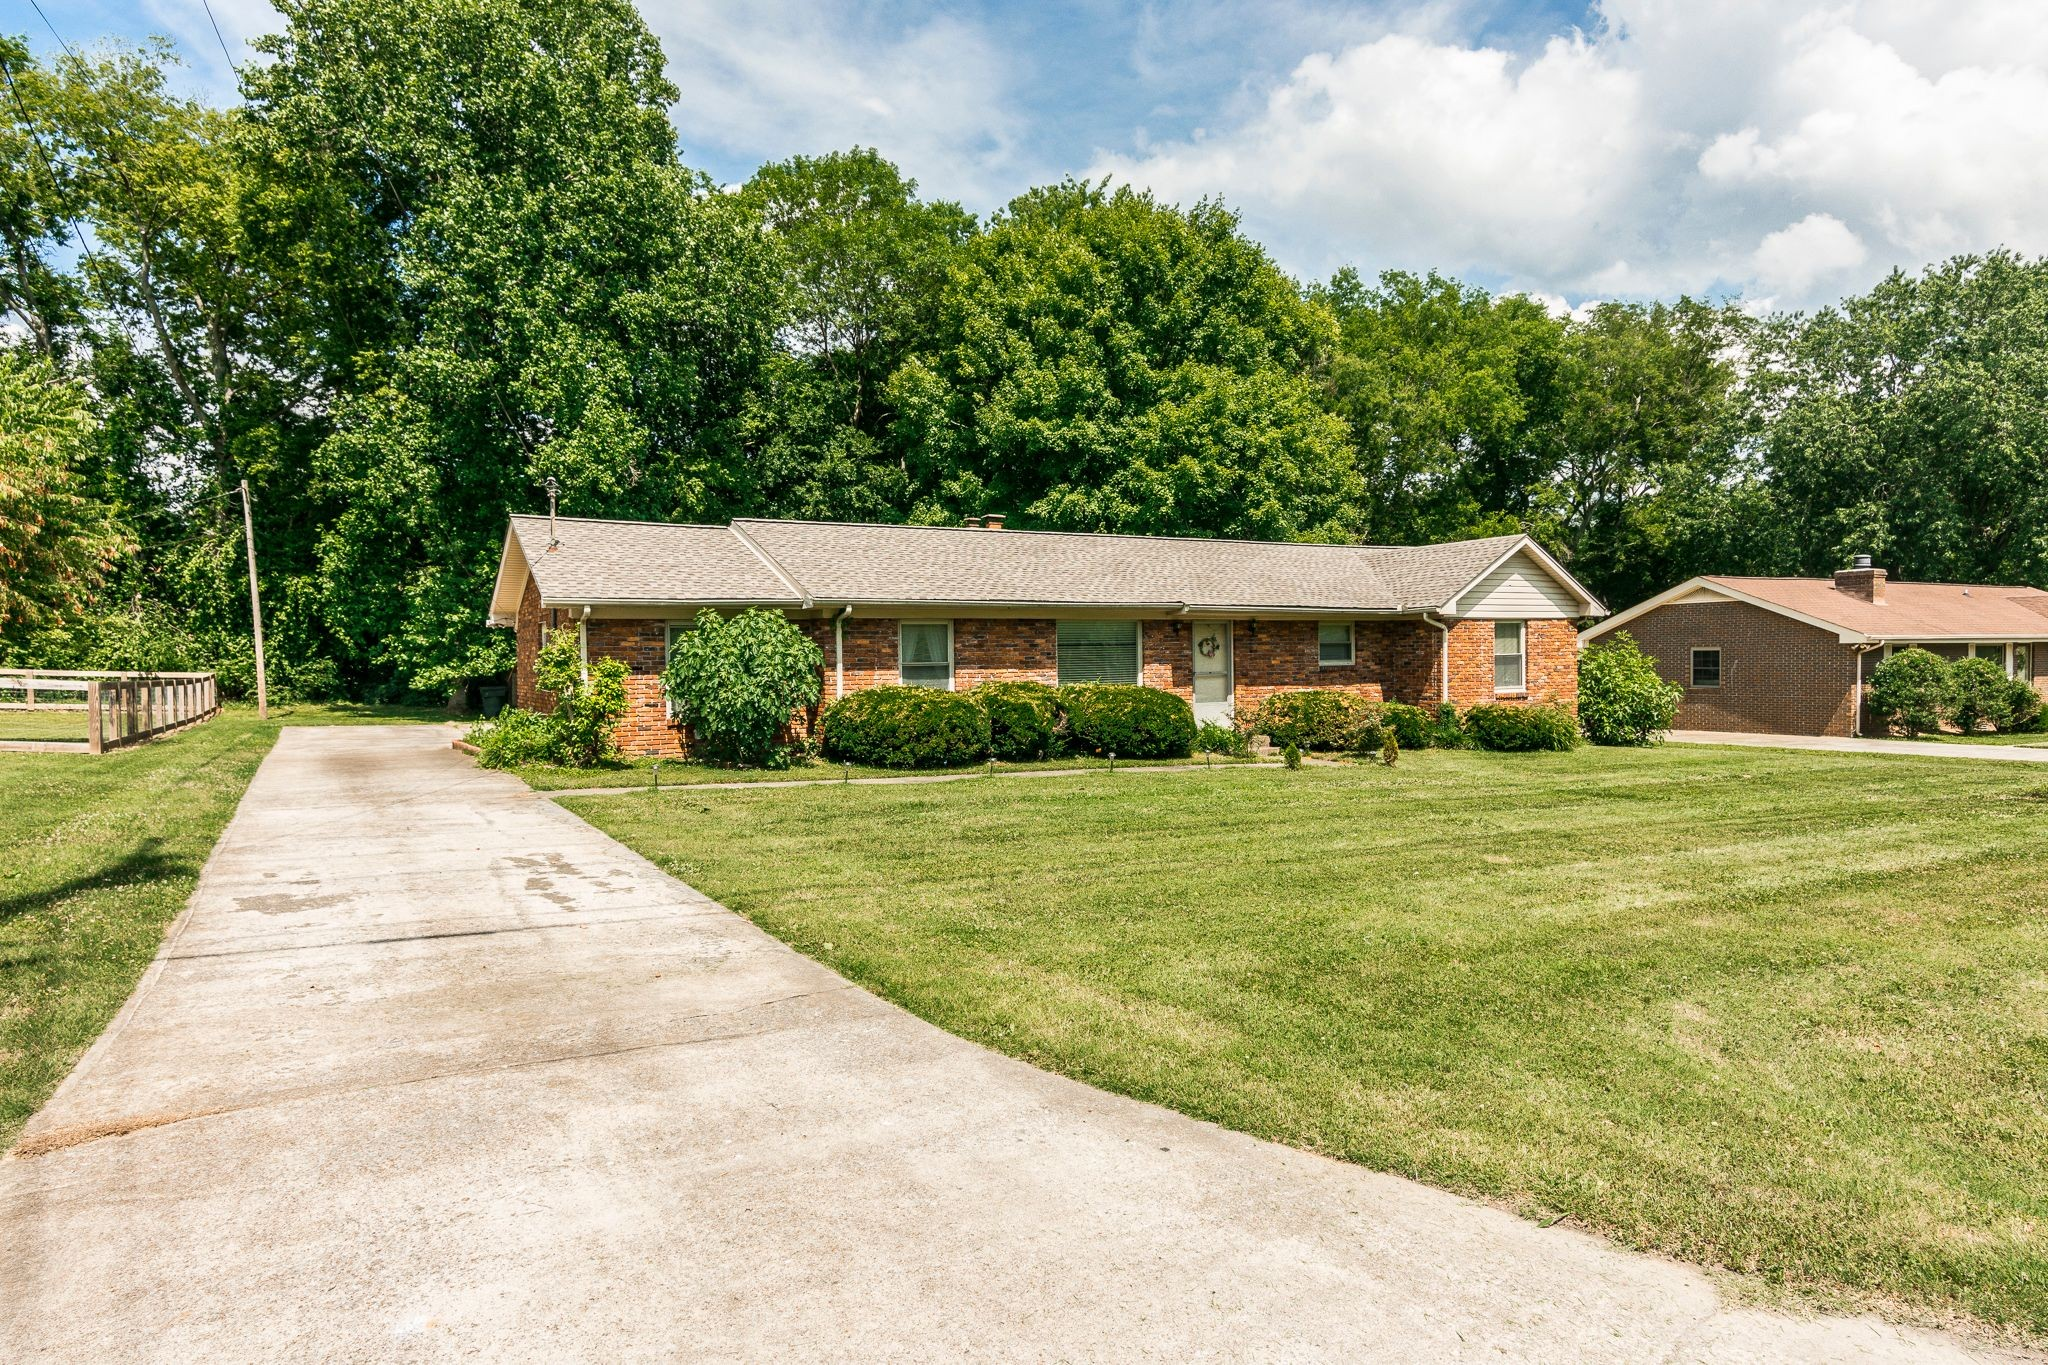 815 Belvedere Dr Property Picture 1